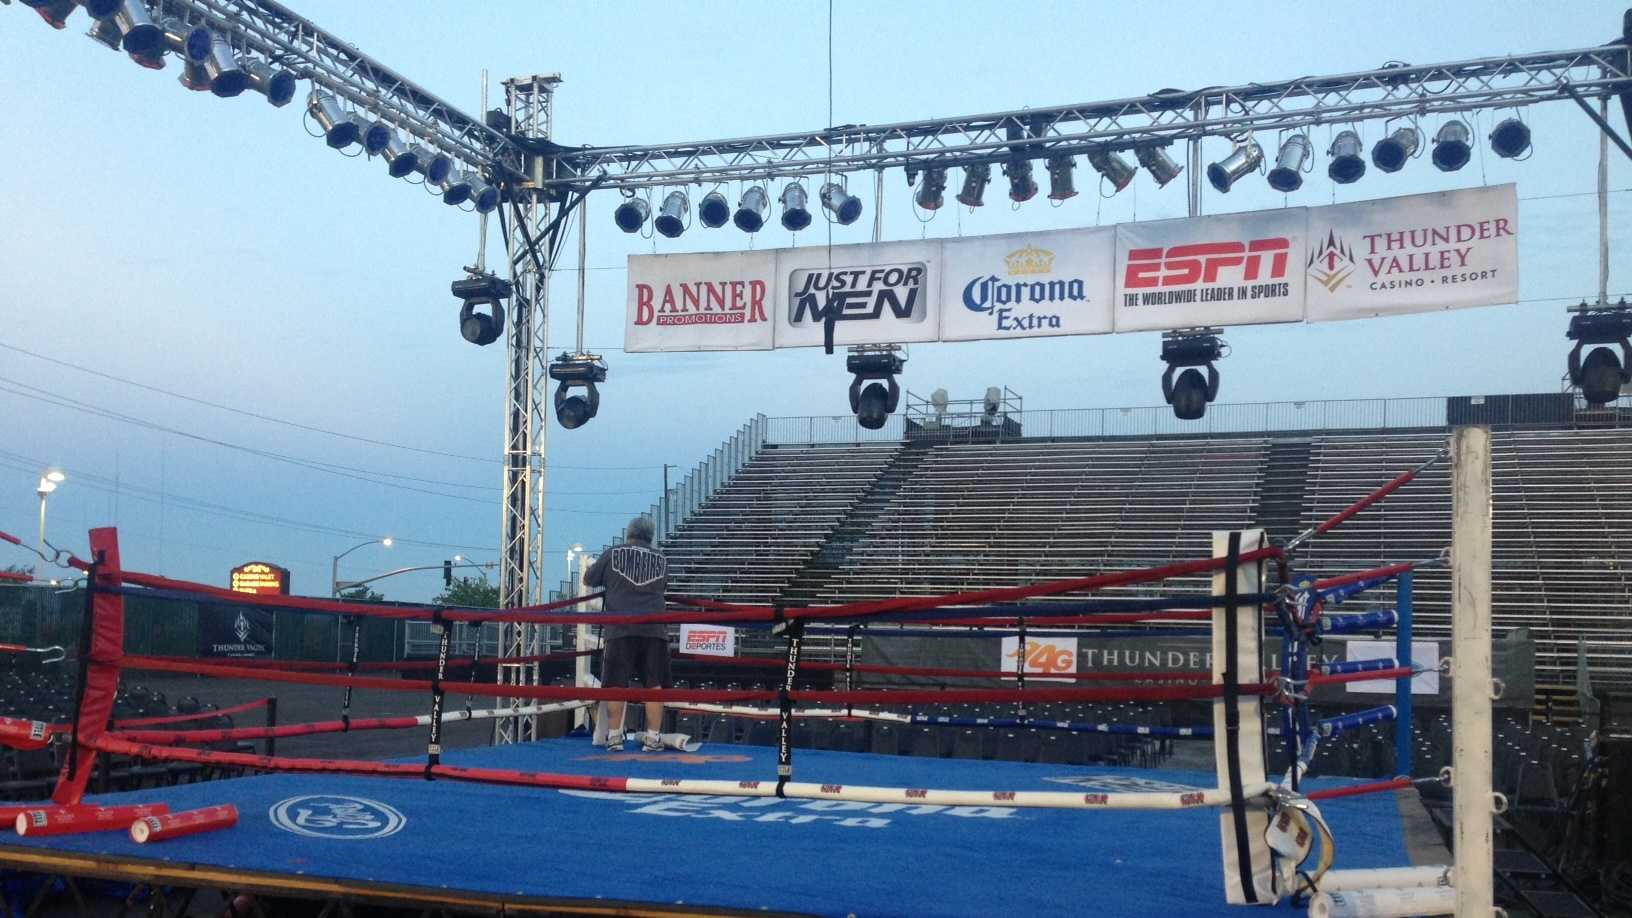 The seven-bout event will be broadcast around the world by ESPN, the first nationally televised boxing event to come to Sacramento in 10 years.